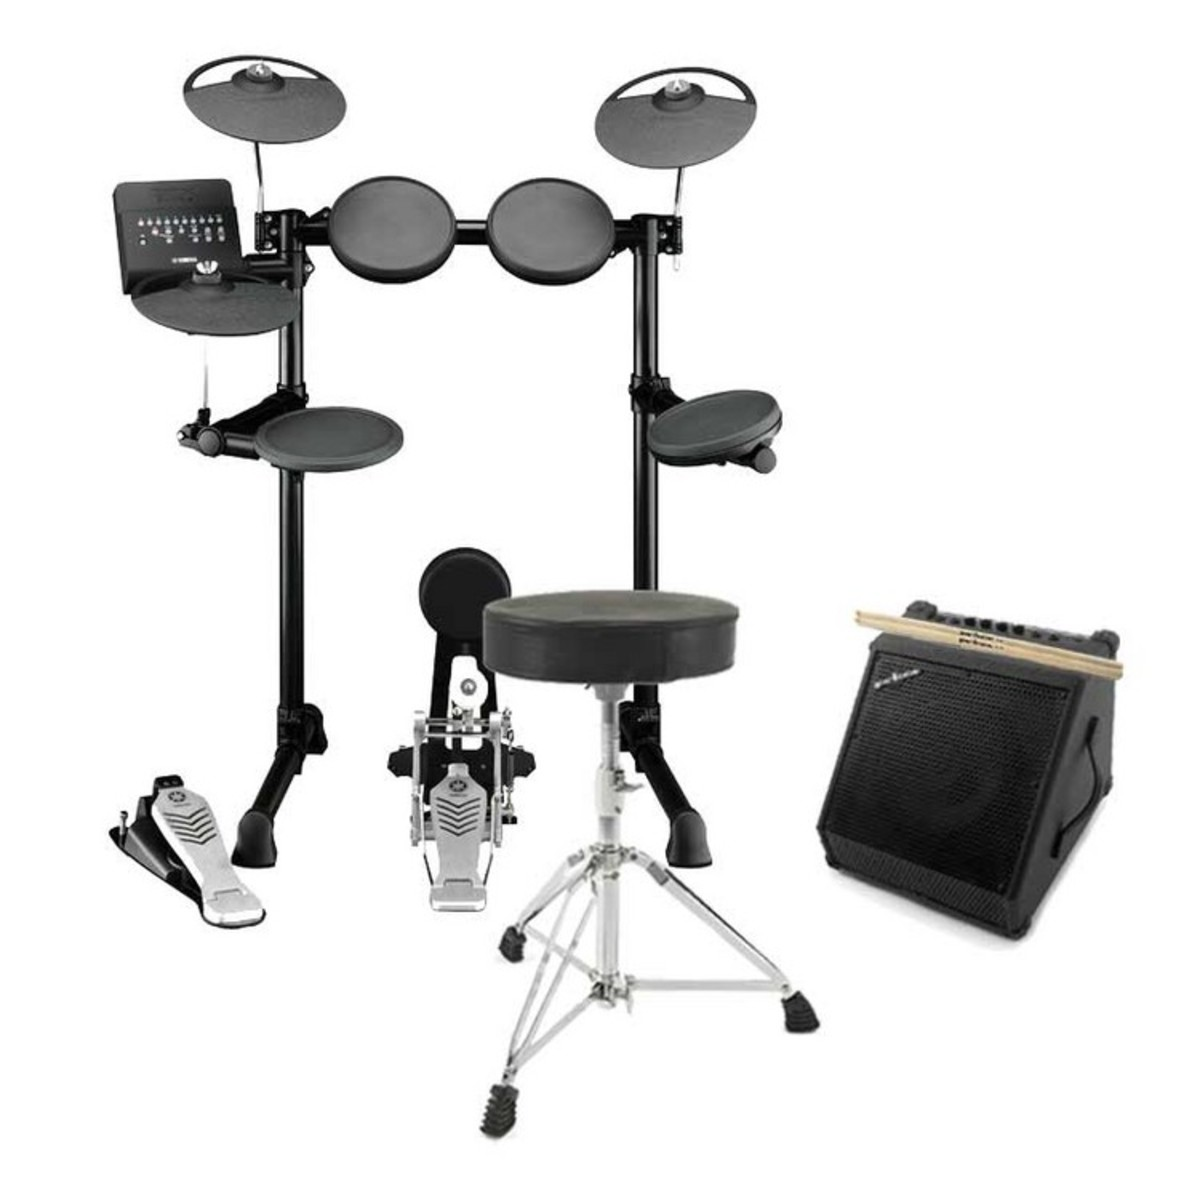 Yamaha dtx450k electronic drum kit with amp stool and for Yamaha electronic drum kit for sale